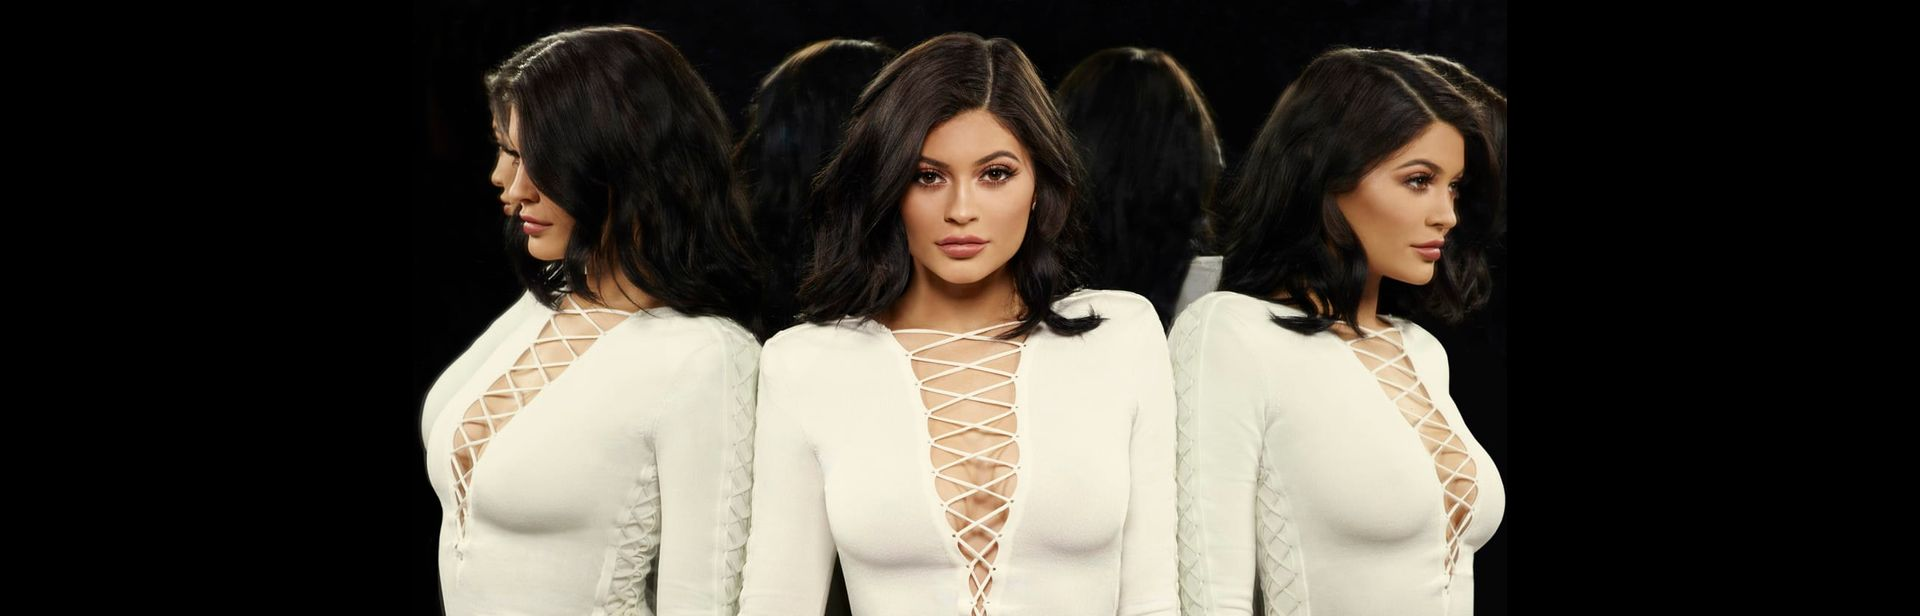 Kylie Jenner & Famous Instagram Egg: Explained